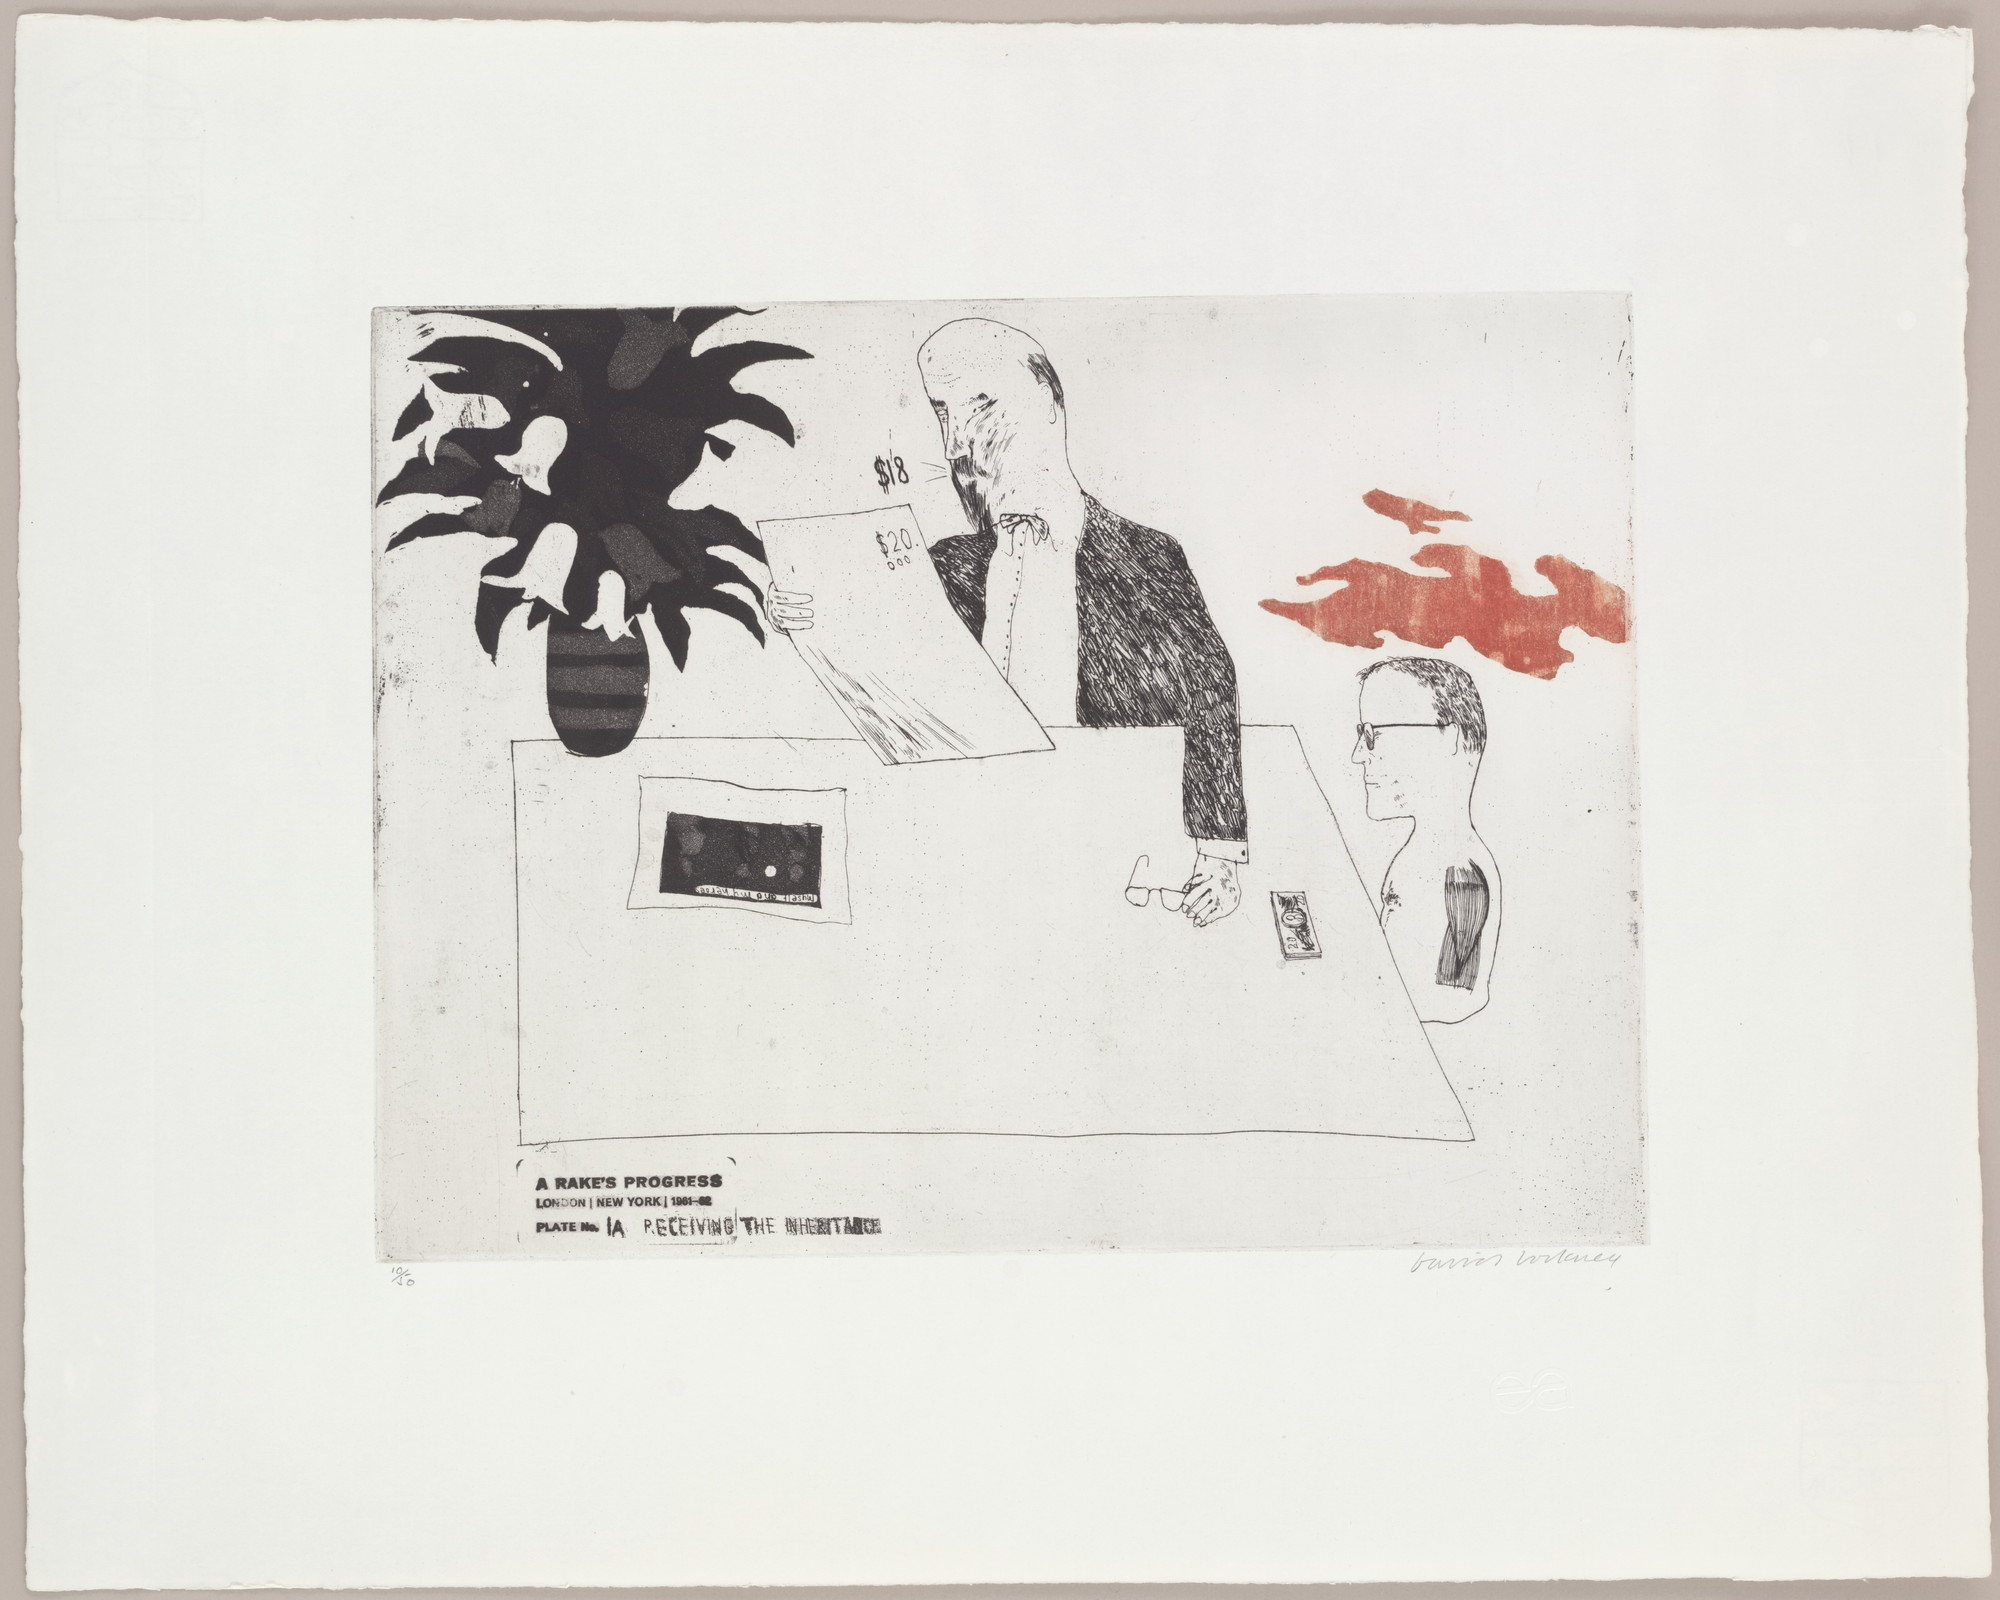 David Hockney. Receiving the Inheritance (plate 1a) from A Rake's Progress. 1961–62, published 1963